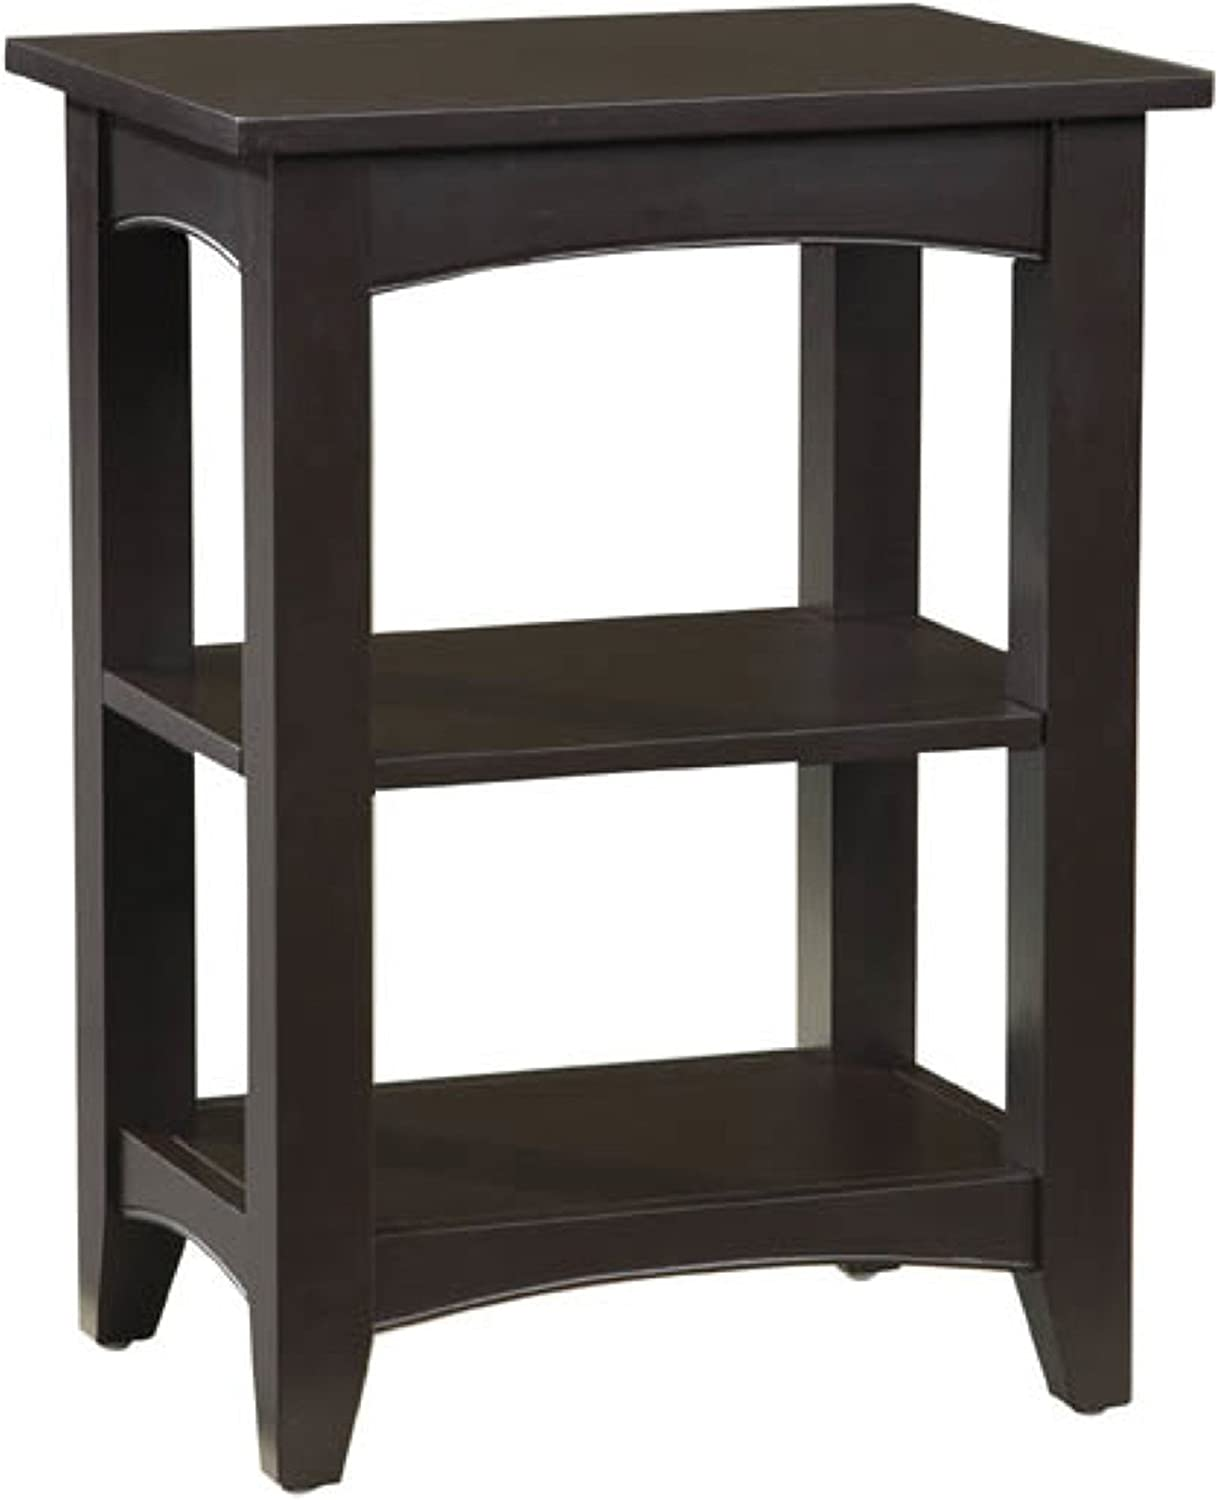 Alaterre ASCA02CL Shaker Cottage 2 Shelf End Table, Chocolate